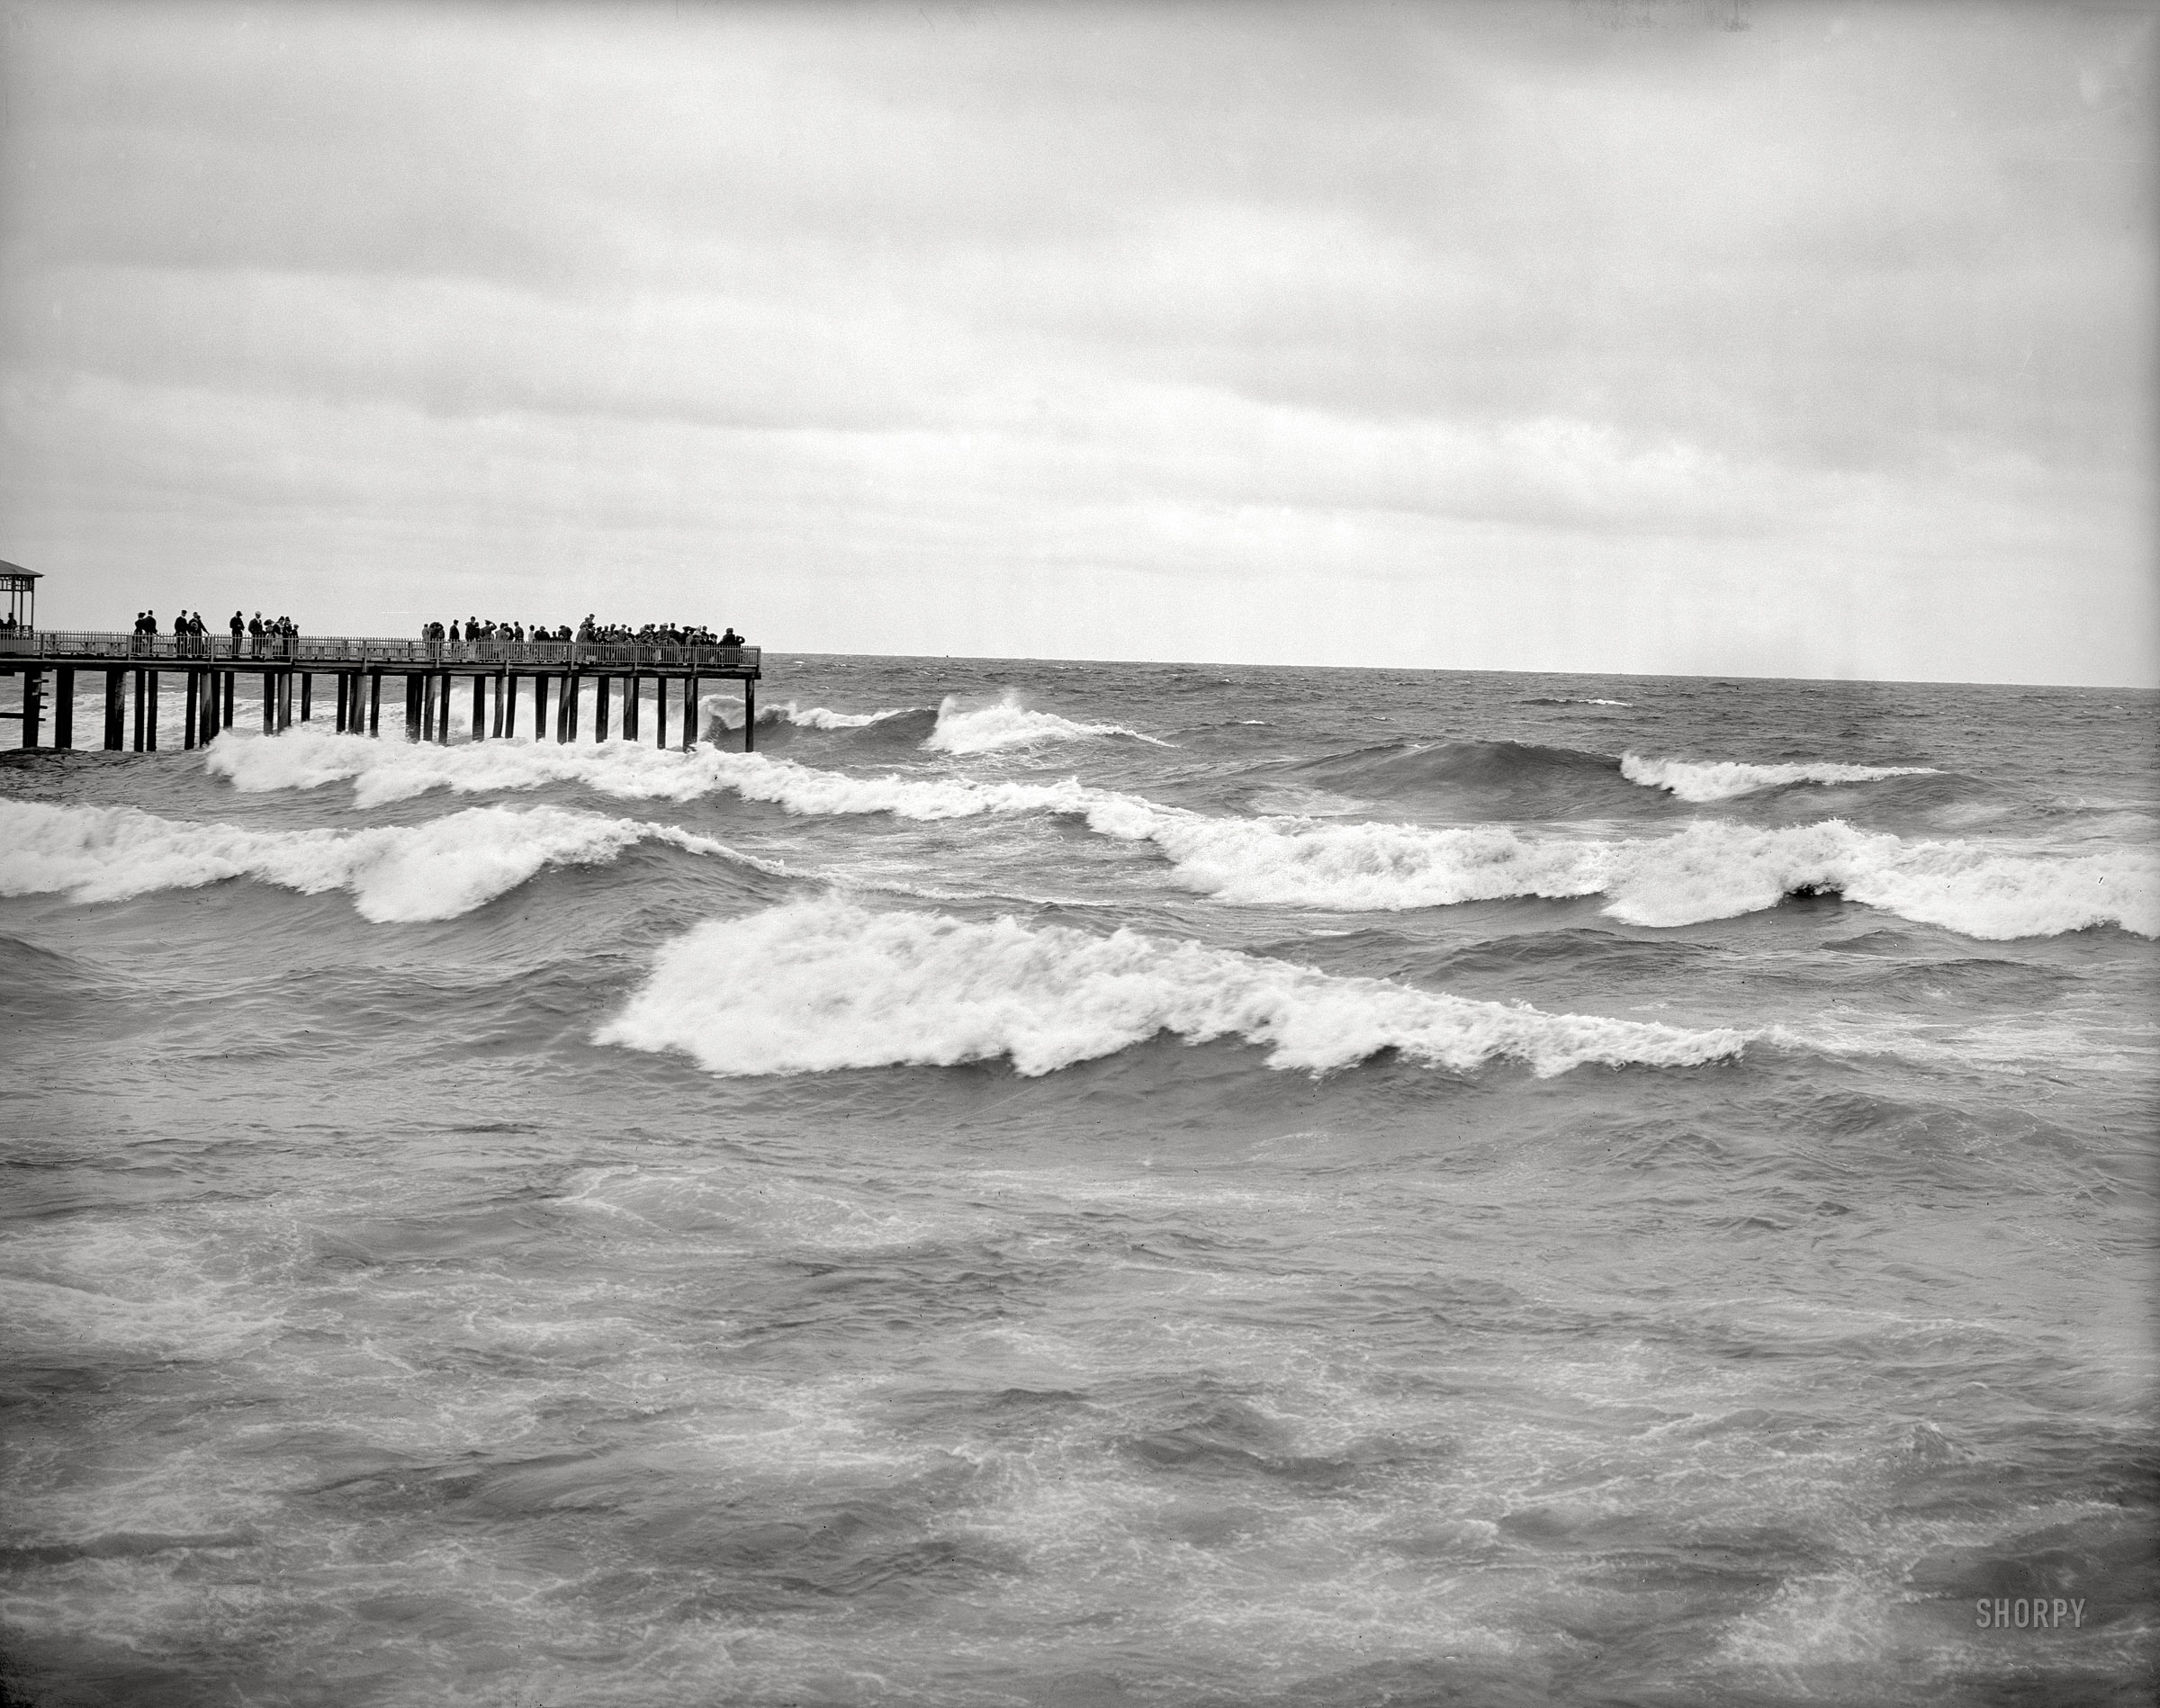 A windy day on the pier